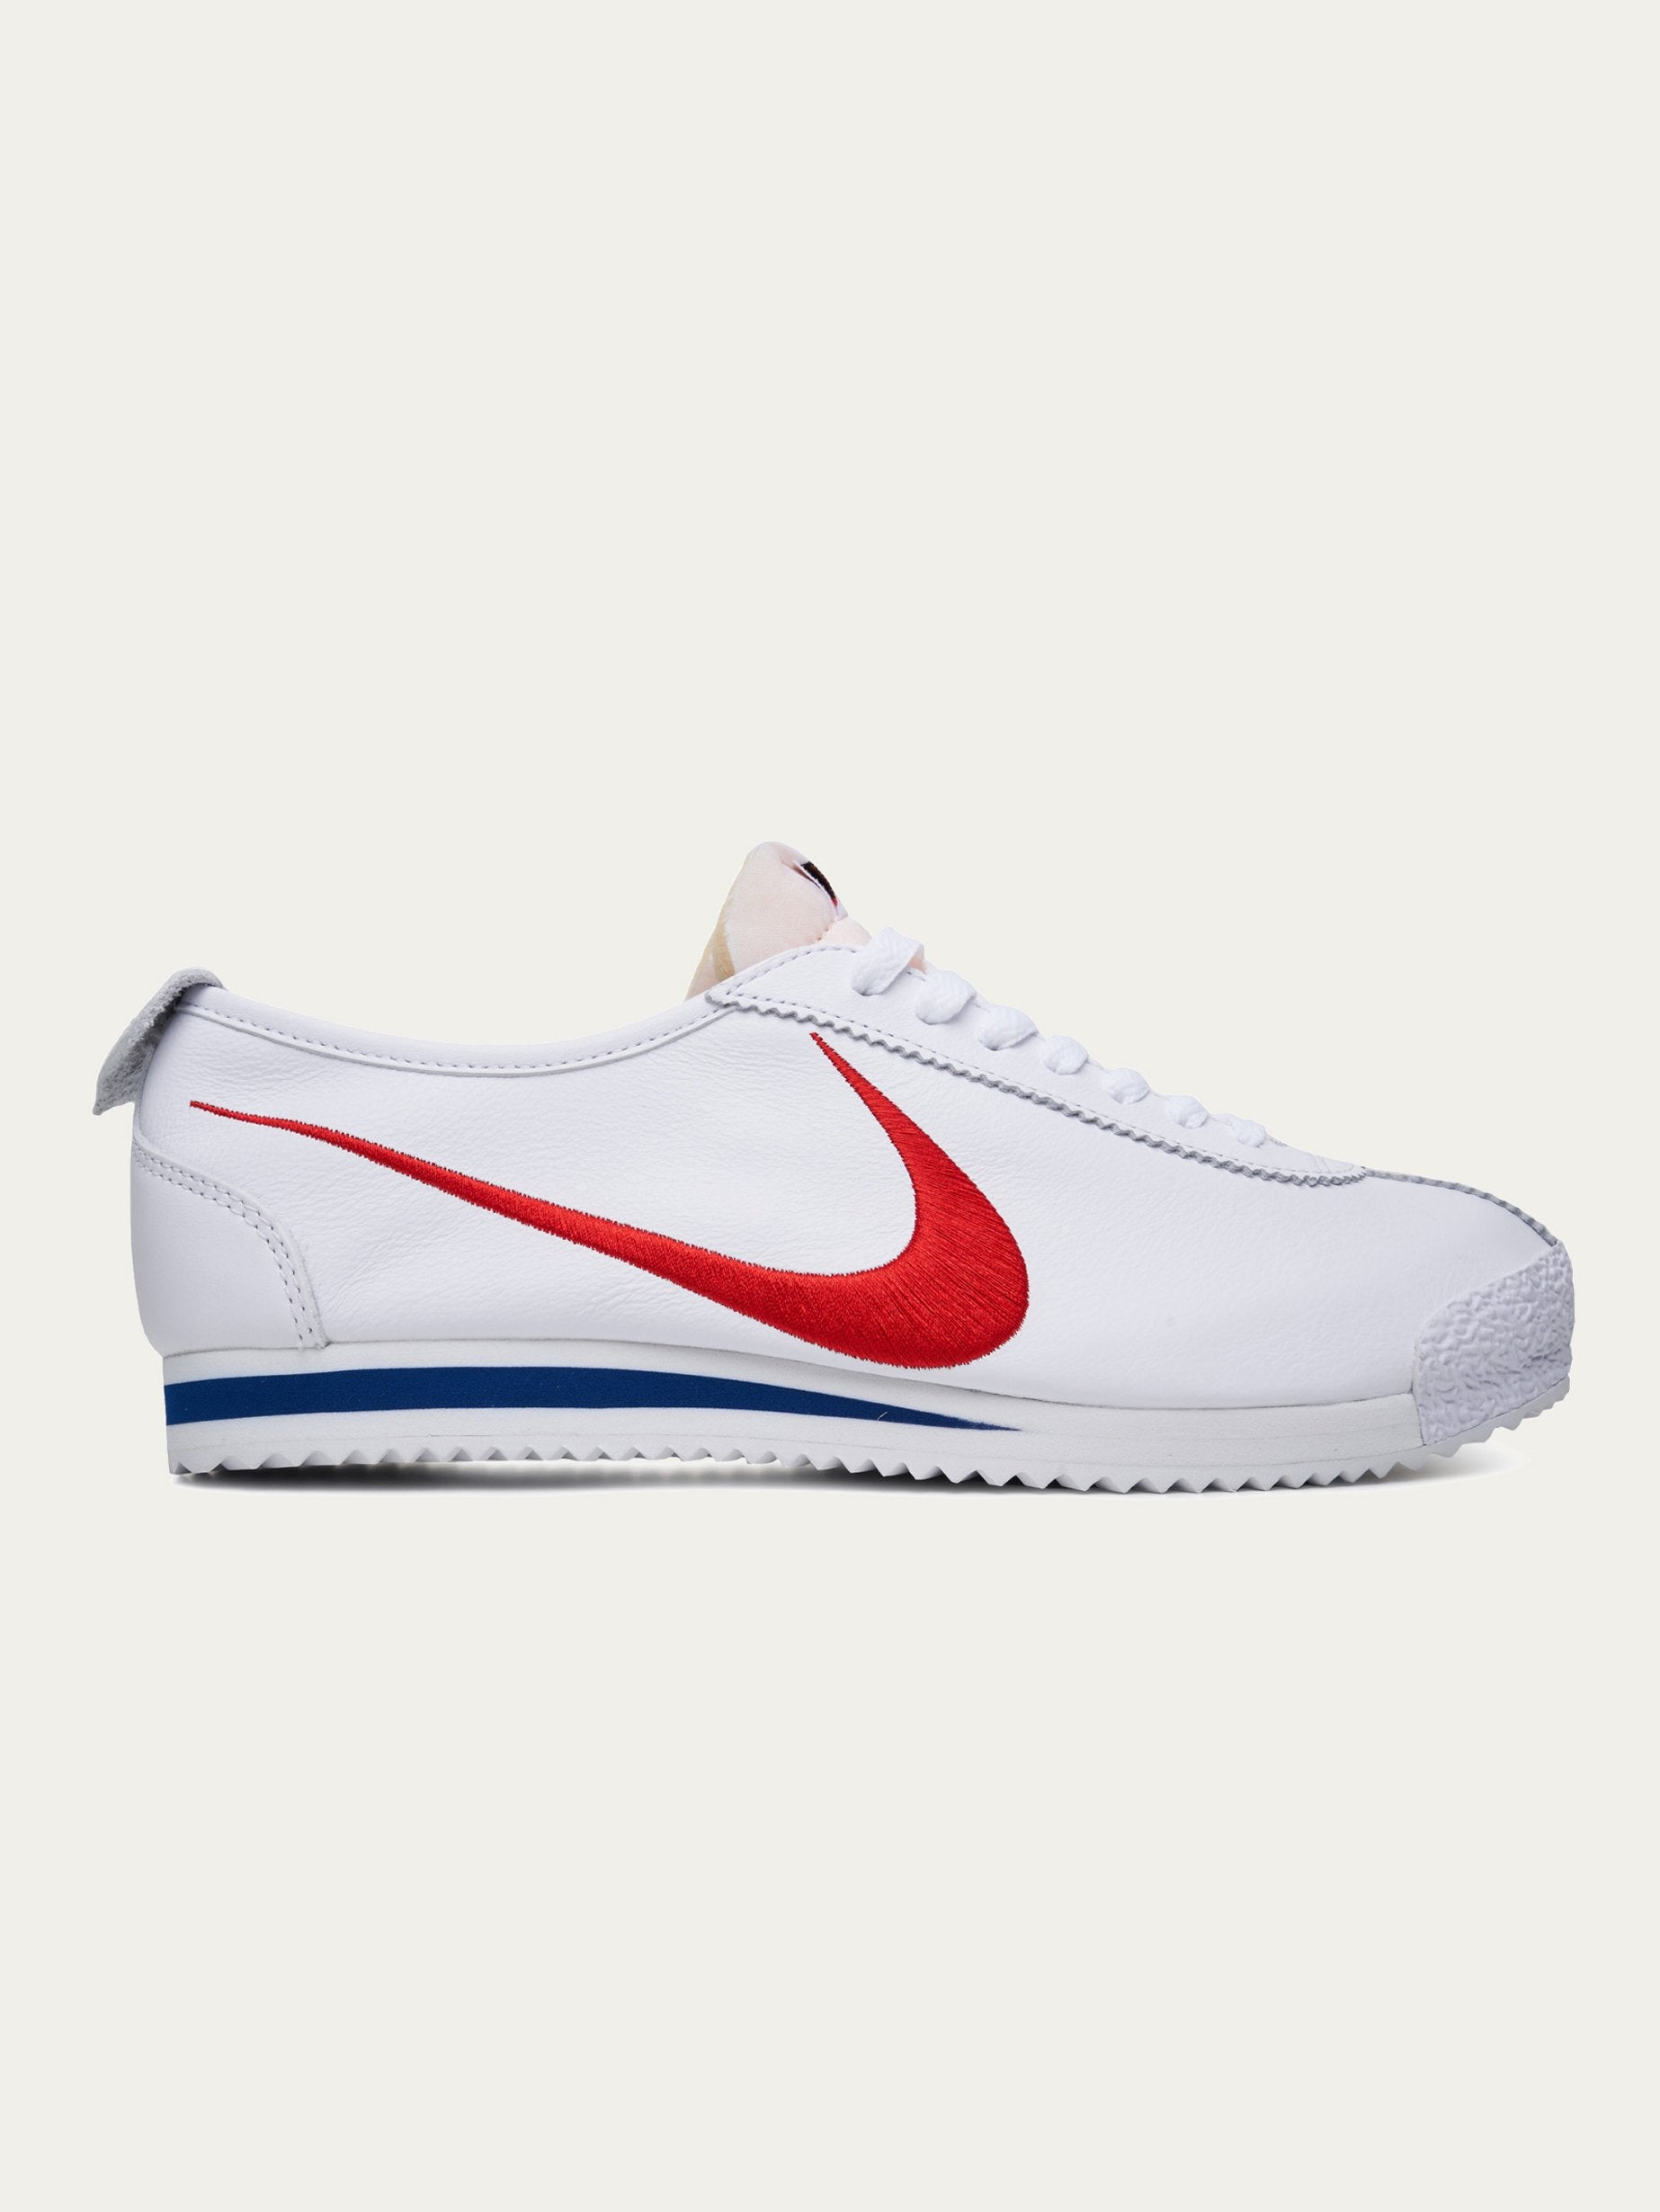 White / Varsity Red/ Game Royal Nike Cortez '72 Shoedog Q (Swoosh) 1